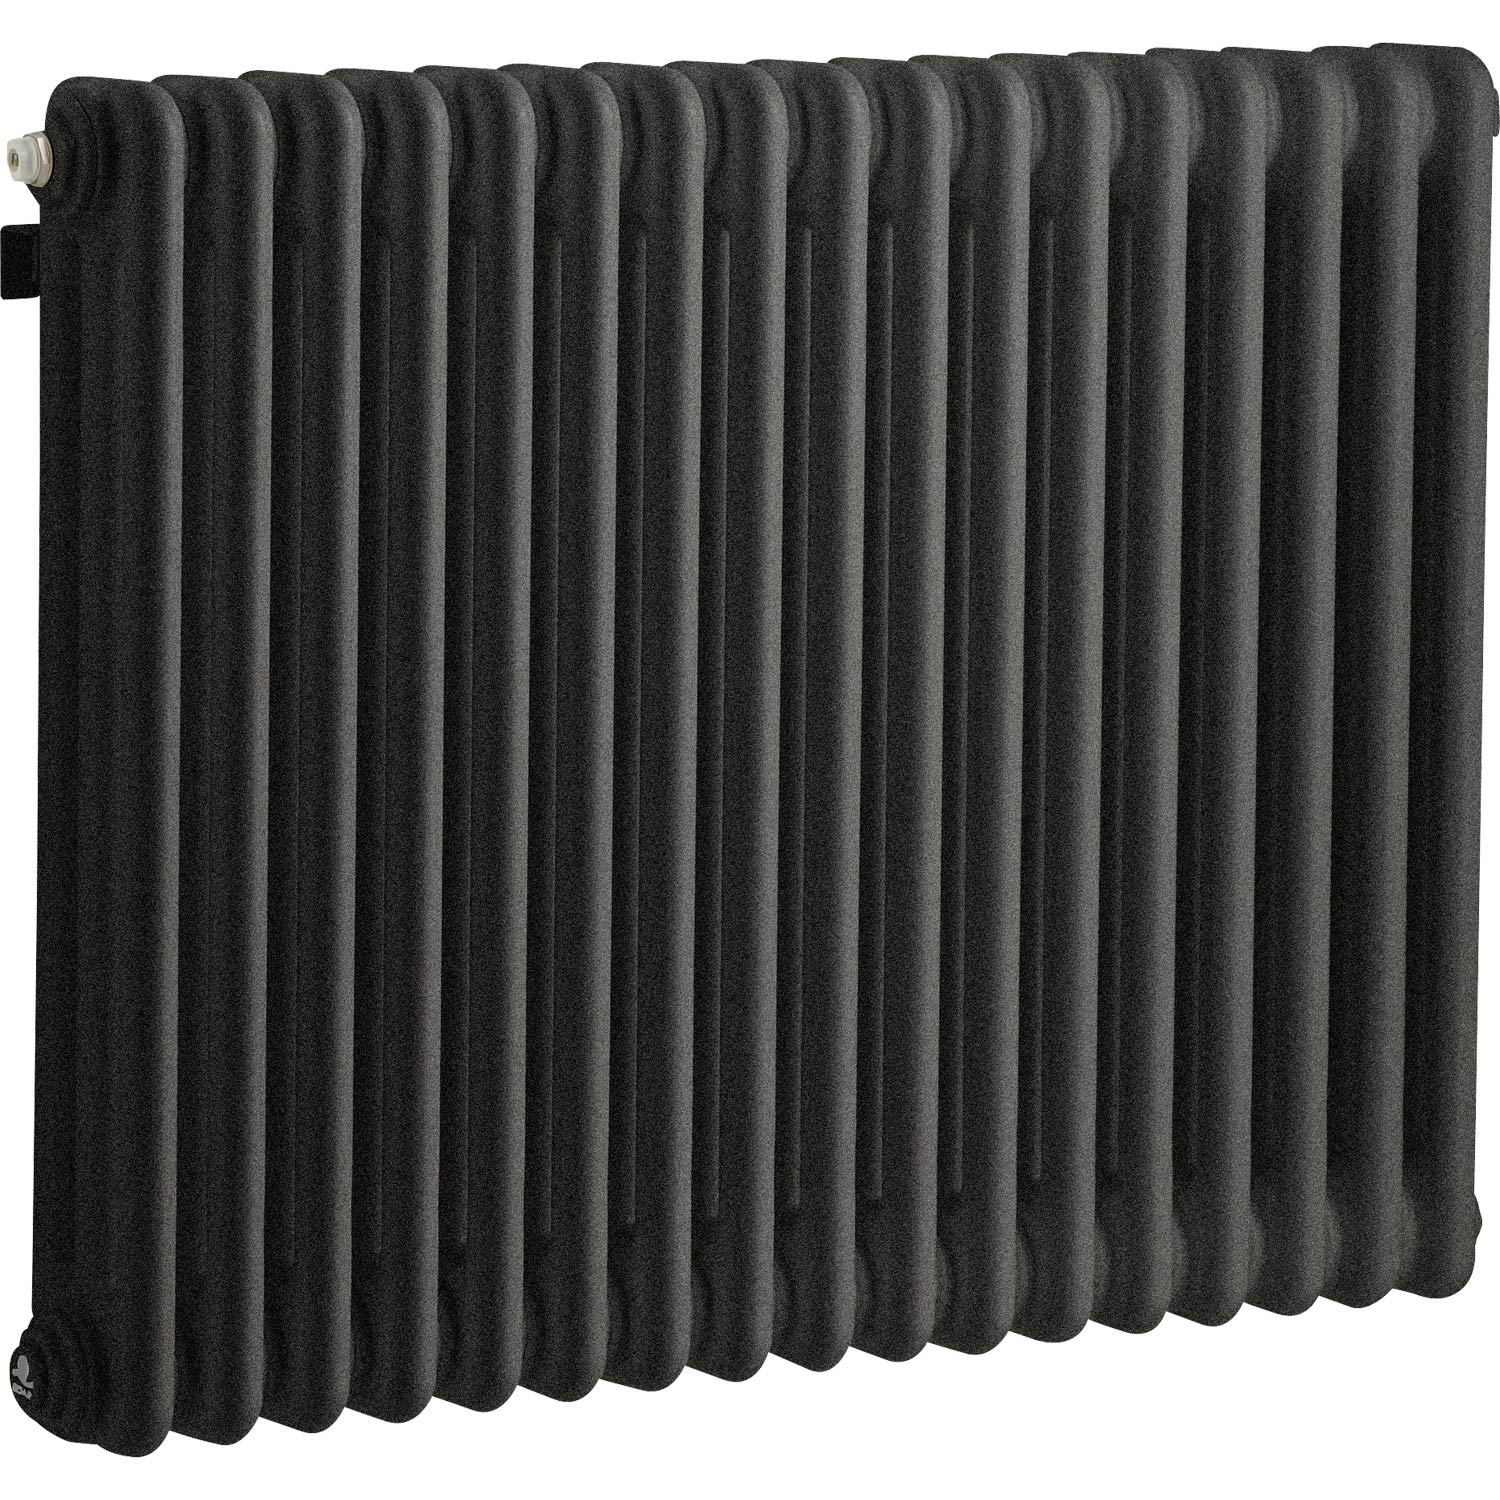 radiateur chauffage central tesi noir cm 1030 w leroy merlin. Black Bedroom Furniture Sets. Home Design Ideas